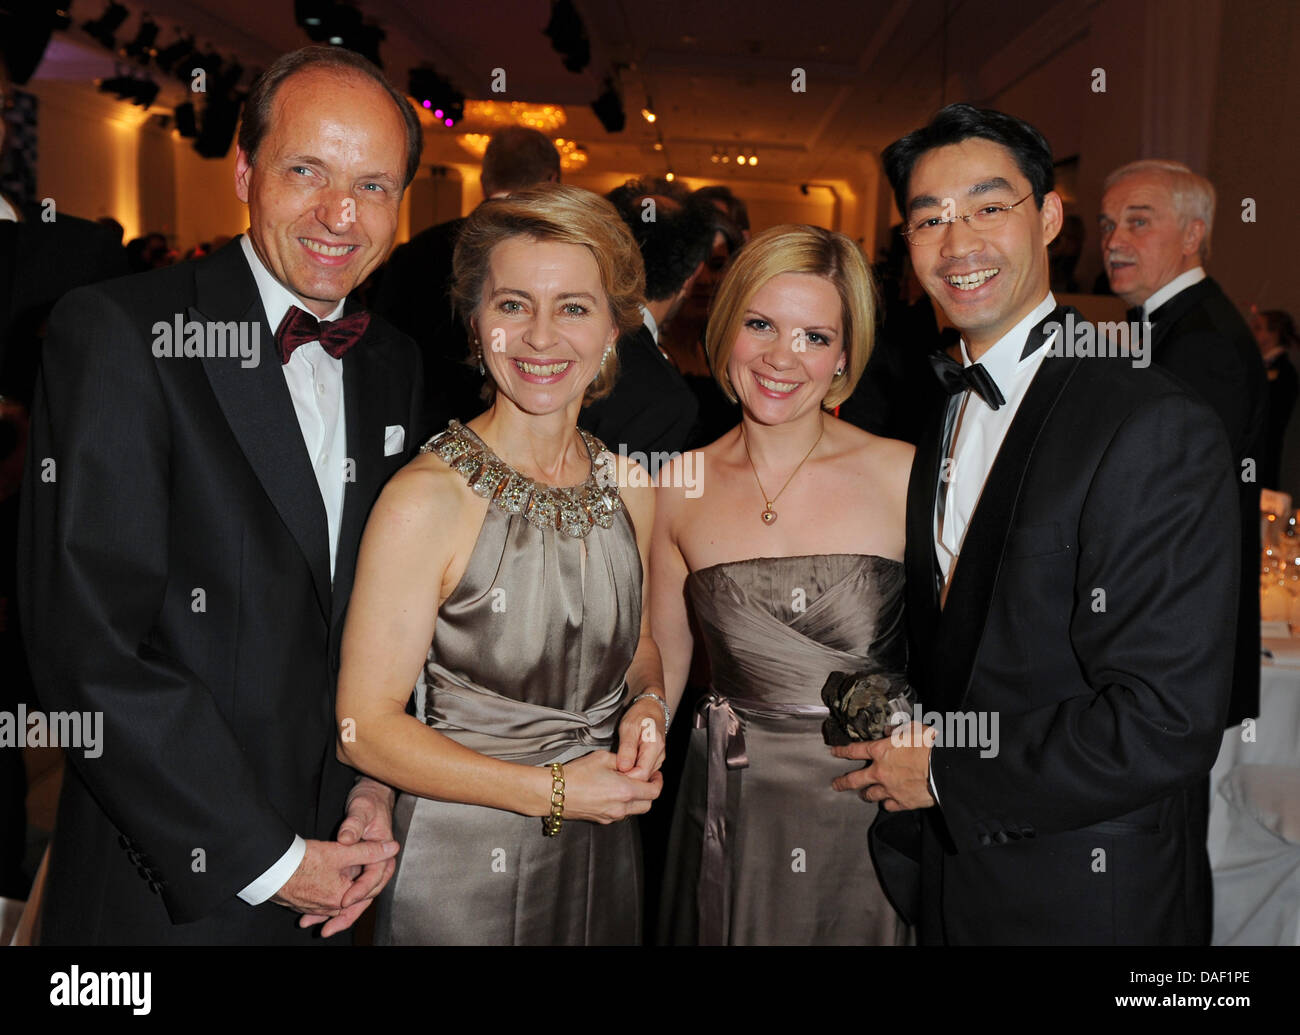 German Labour Minister Ursula von der Leyen (2nd L, CDU) and her husband Heiko (L), German Minister of Economy Philipp Roesler (R) and his wife Wiebke, attend the 60th annual press ball 'Bundespresseball' at the Hotel Intercontinental in Berlin, Germany, 25 November 2011. Photo: Jens Kalaene